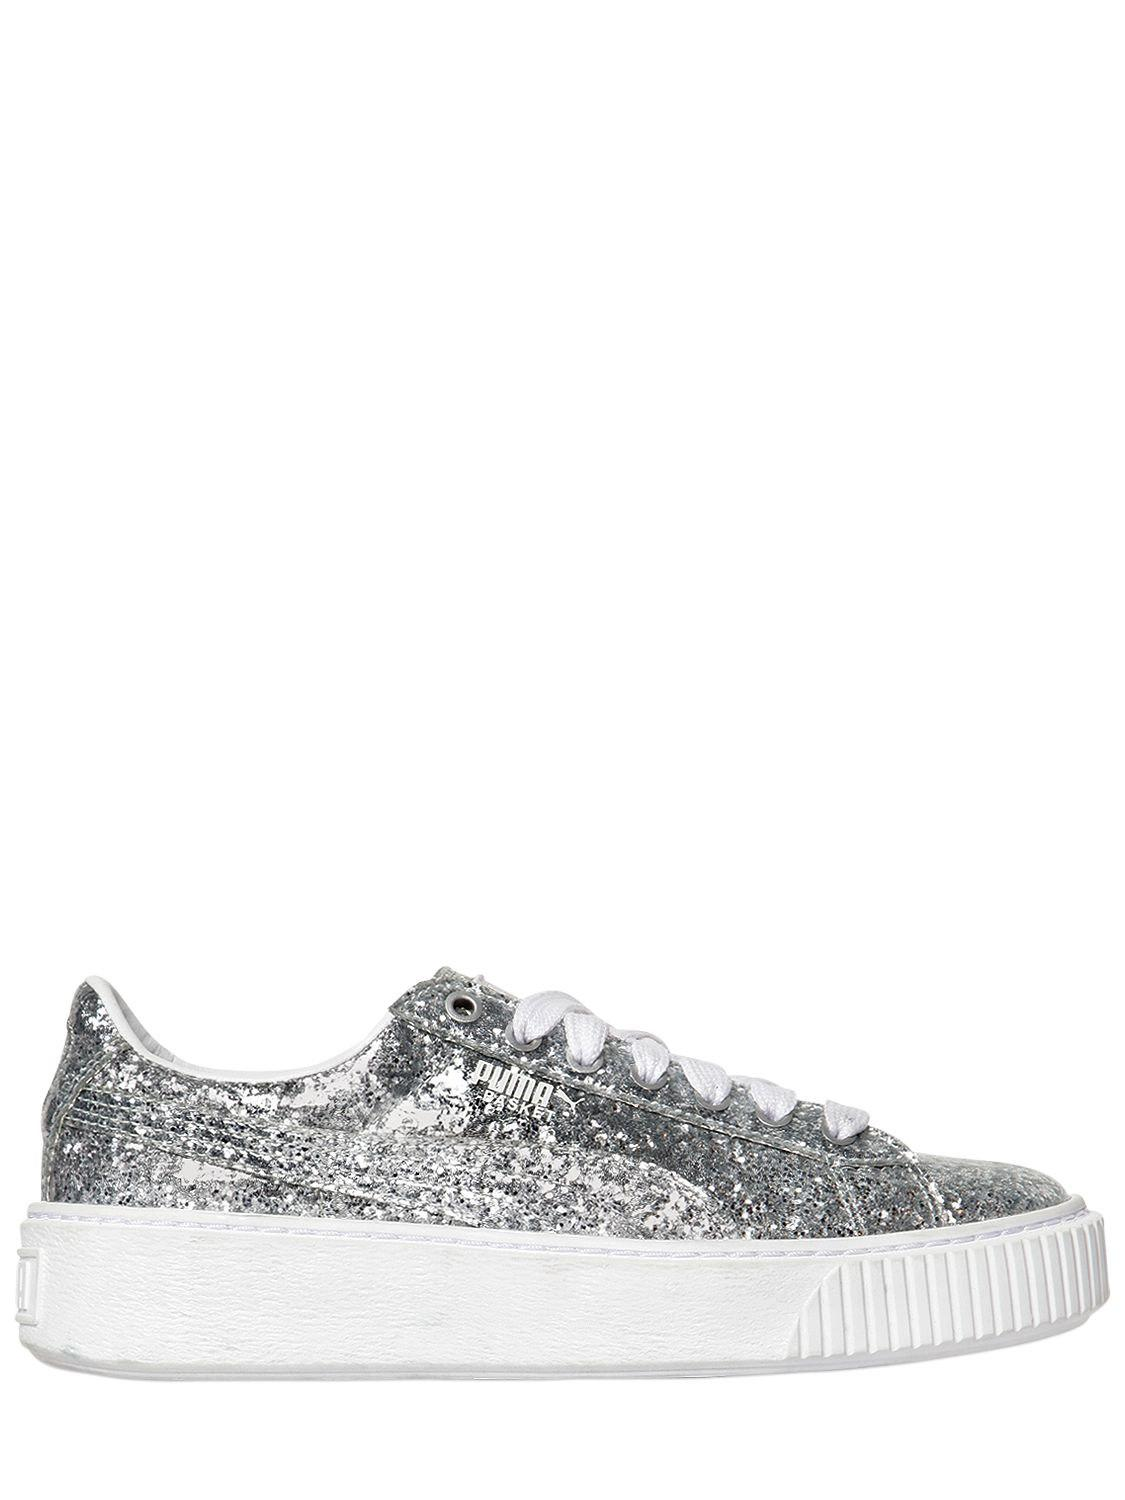 48a37fc0d9862c Puma Select. Women s Metallic Basket Platform Glitter Trainers